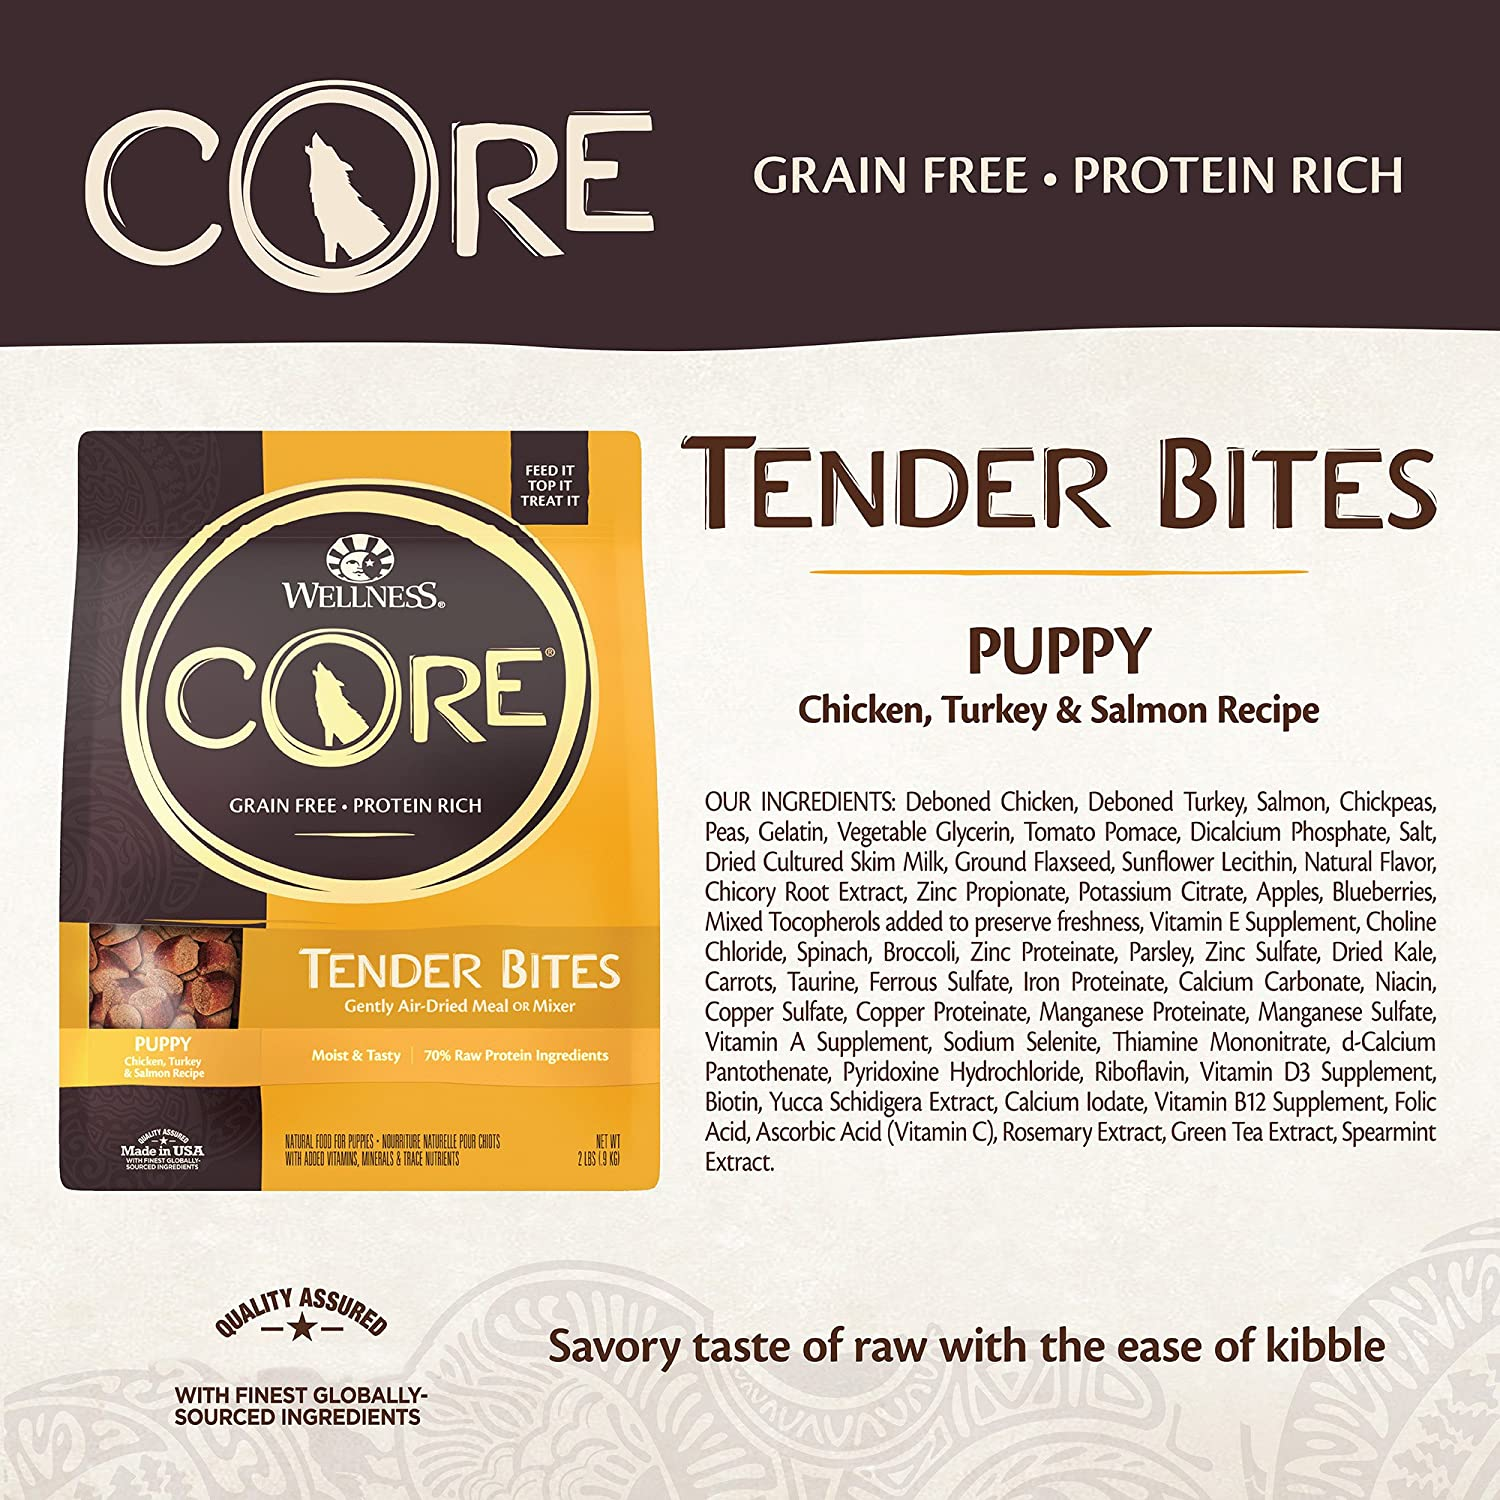 Wellness core air dried grain free natural dry puppy food chicken wellness core air dried grain free natural dry puppy food chicken turkey salmon 2 pound bag amazon pet supplies nvjuhfo Image collections